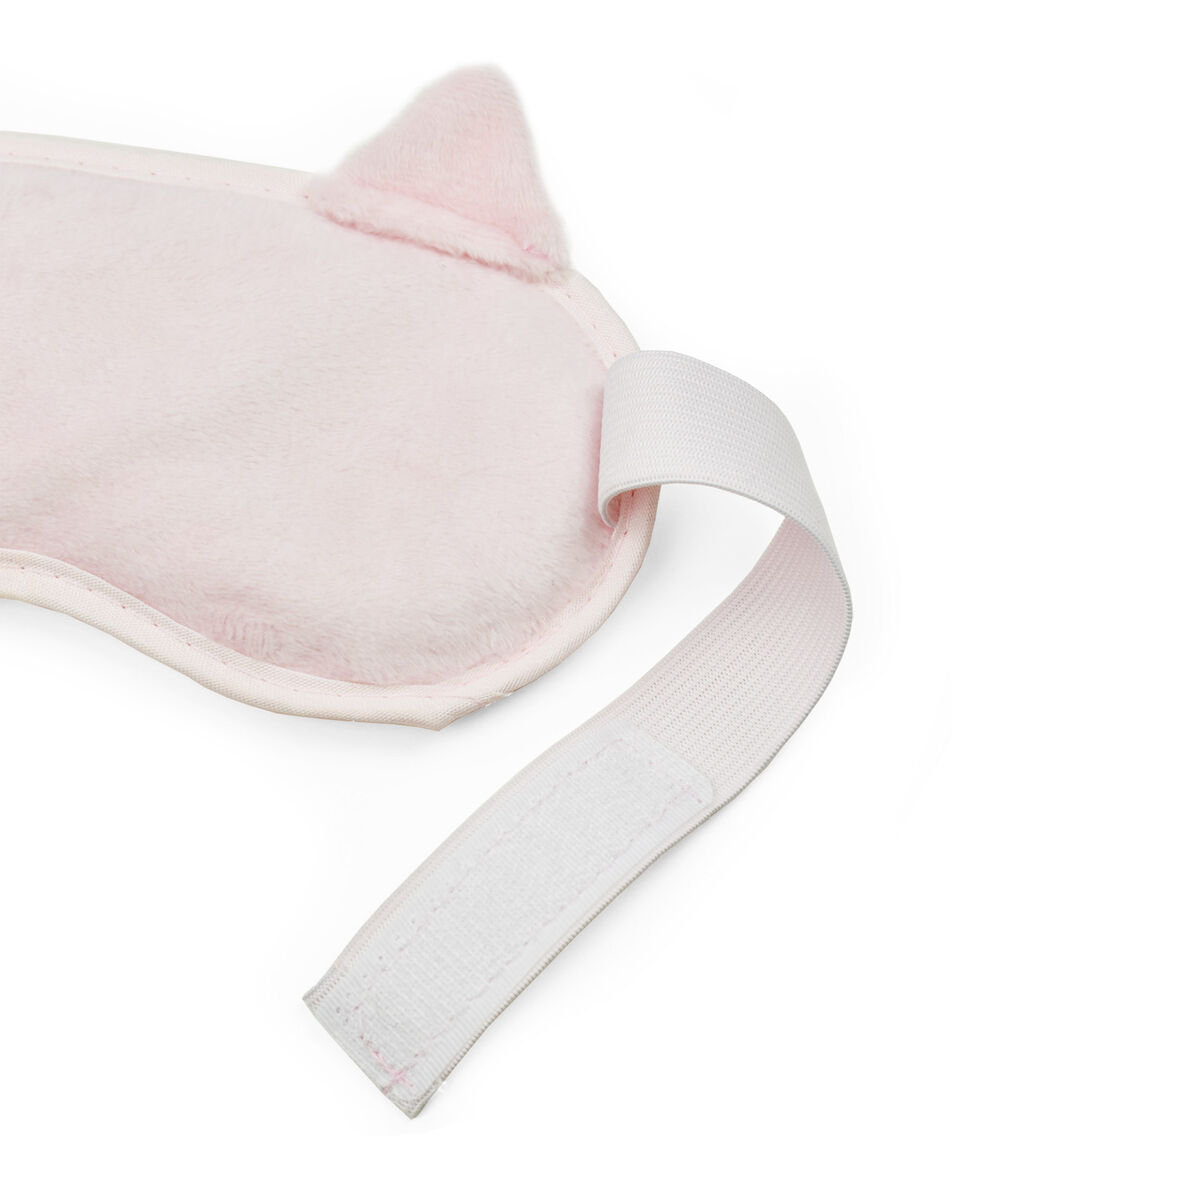 Chill Out - Gel Eye Mask, , zoo